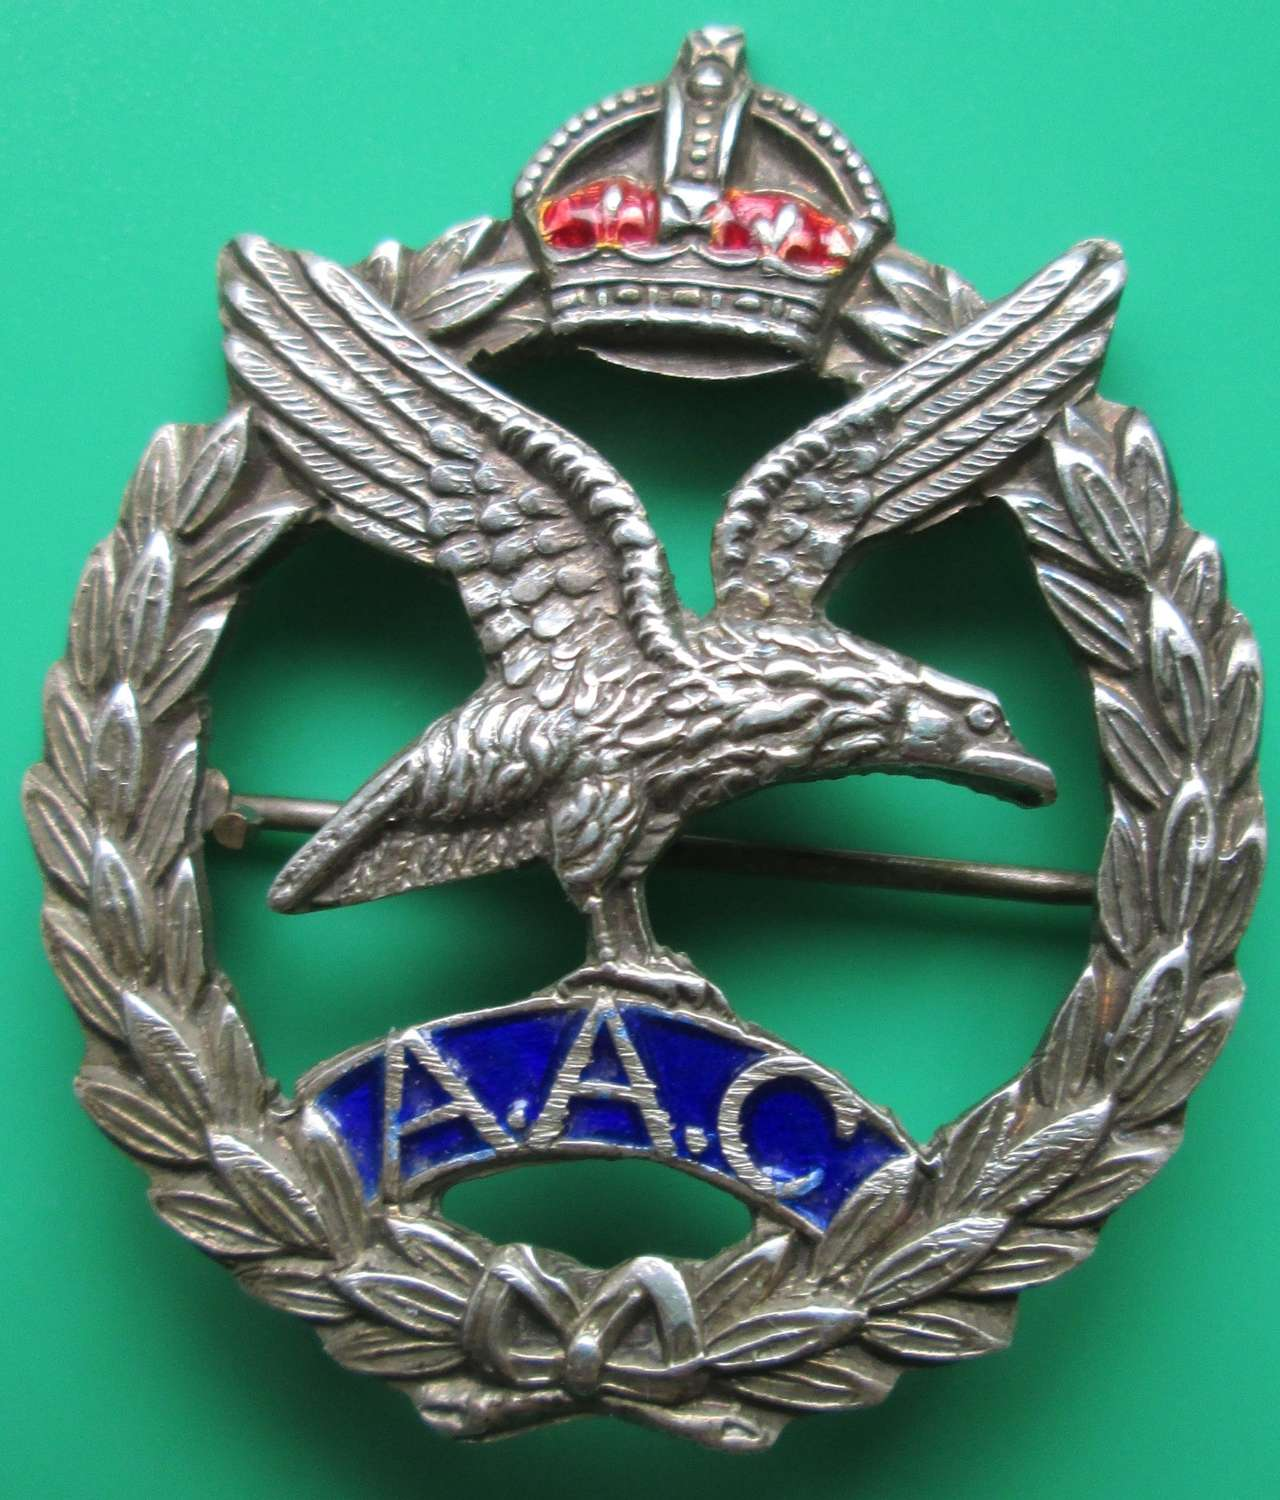 A WWII PERIOD STERLING SILVER ARMY AIR CORPS BROOCH BADGE